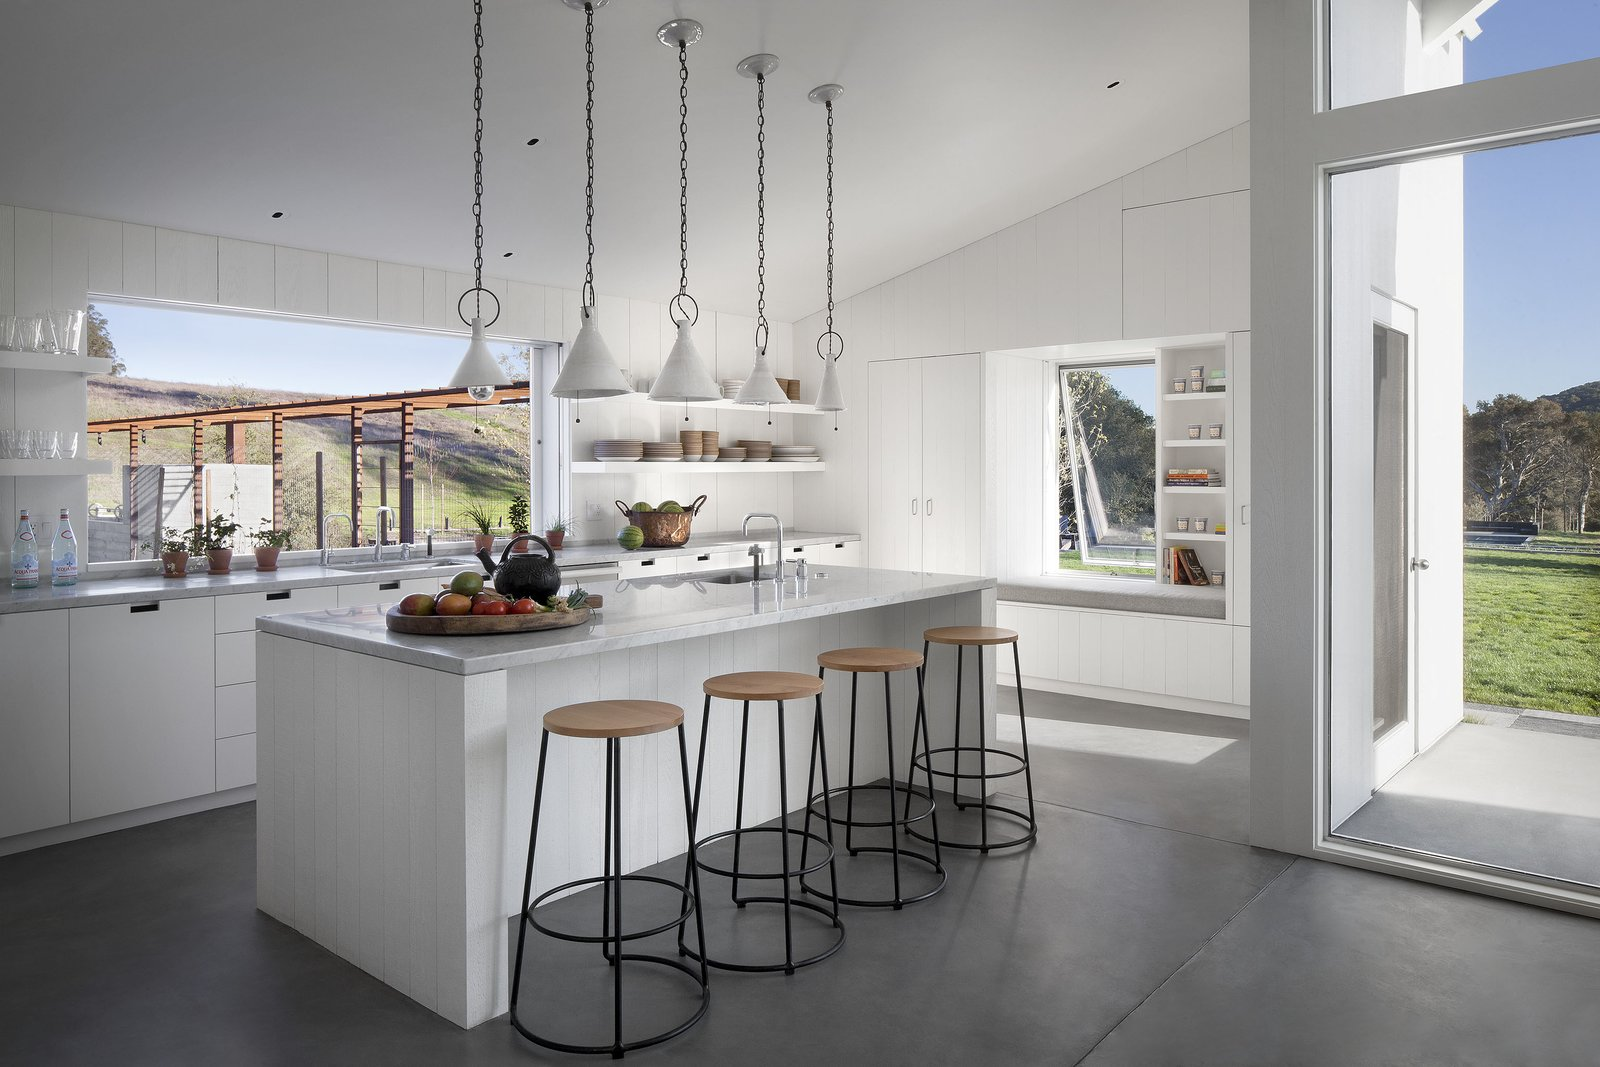 Kitchen, Pendant Lighting, White Cabinet, Marble Counter, and Concrete Floor #TurnbullGriffinHaesloop #interior #kitchen #window  Hupomone Ranch by Turnbull Griffin Haesloop Architects